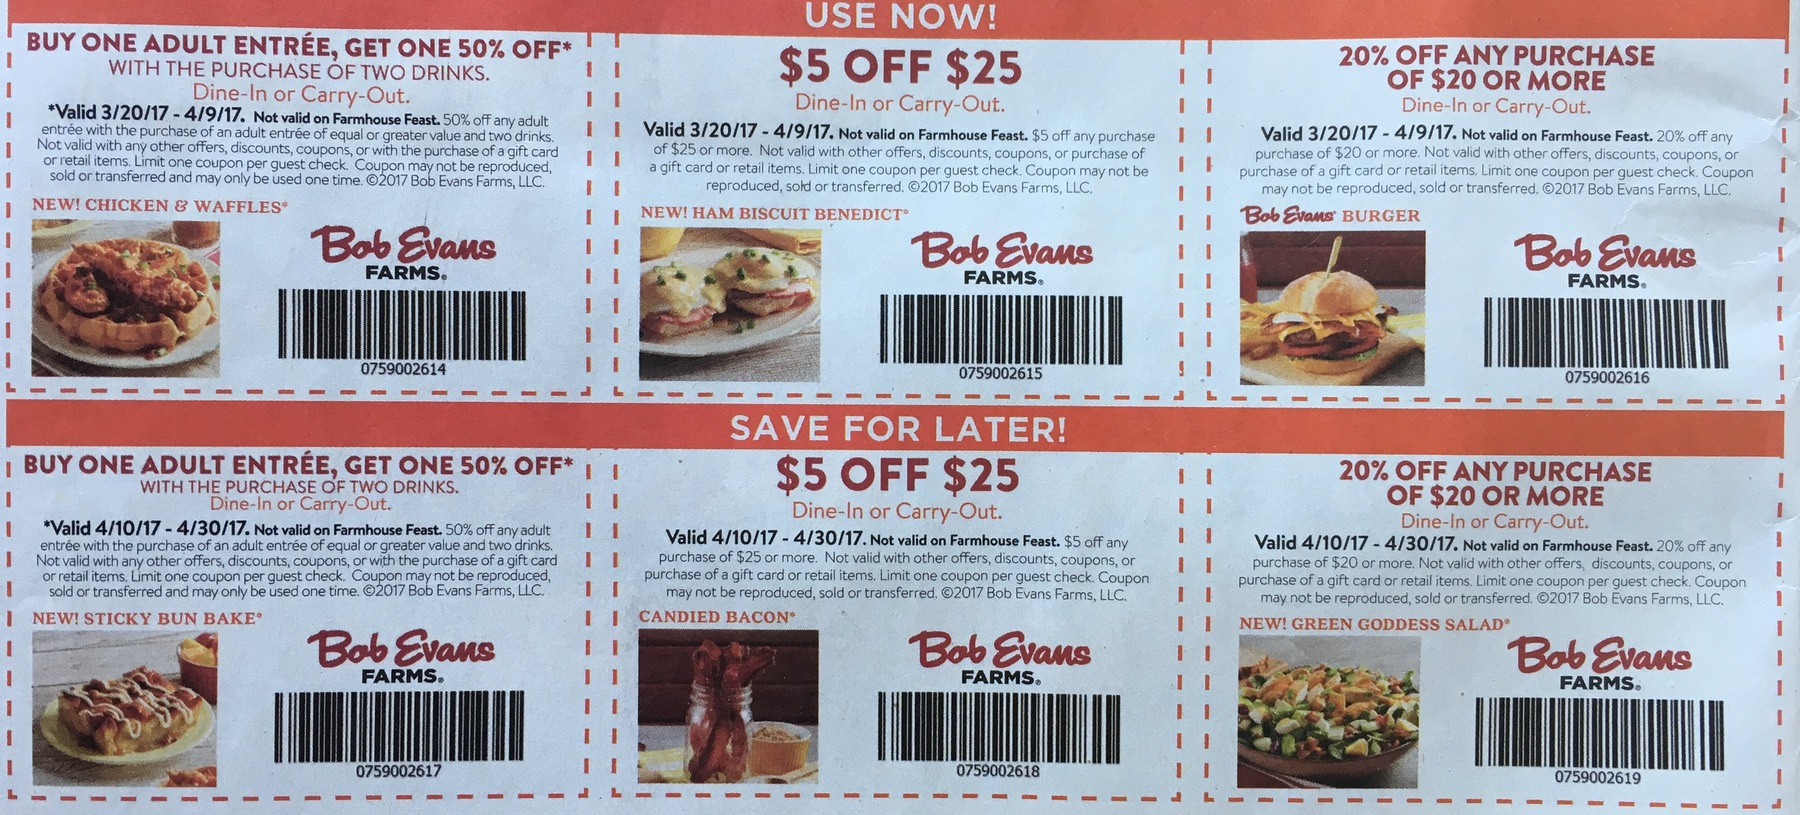 Coupons sales